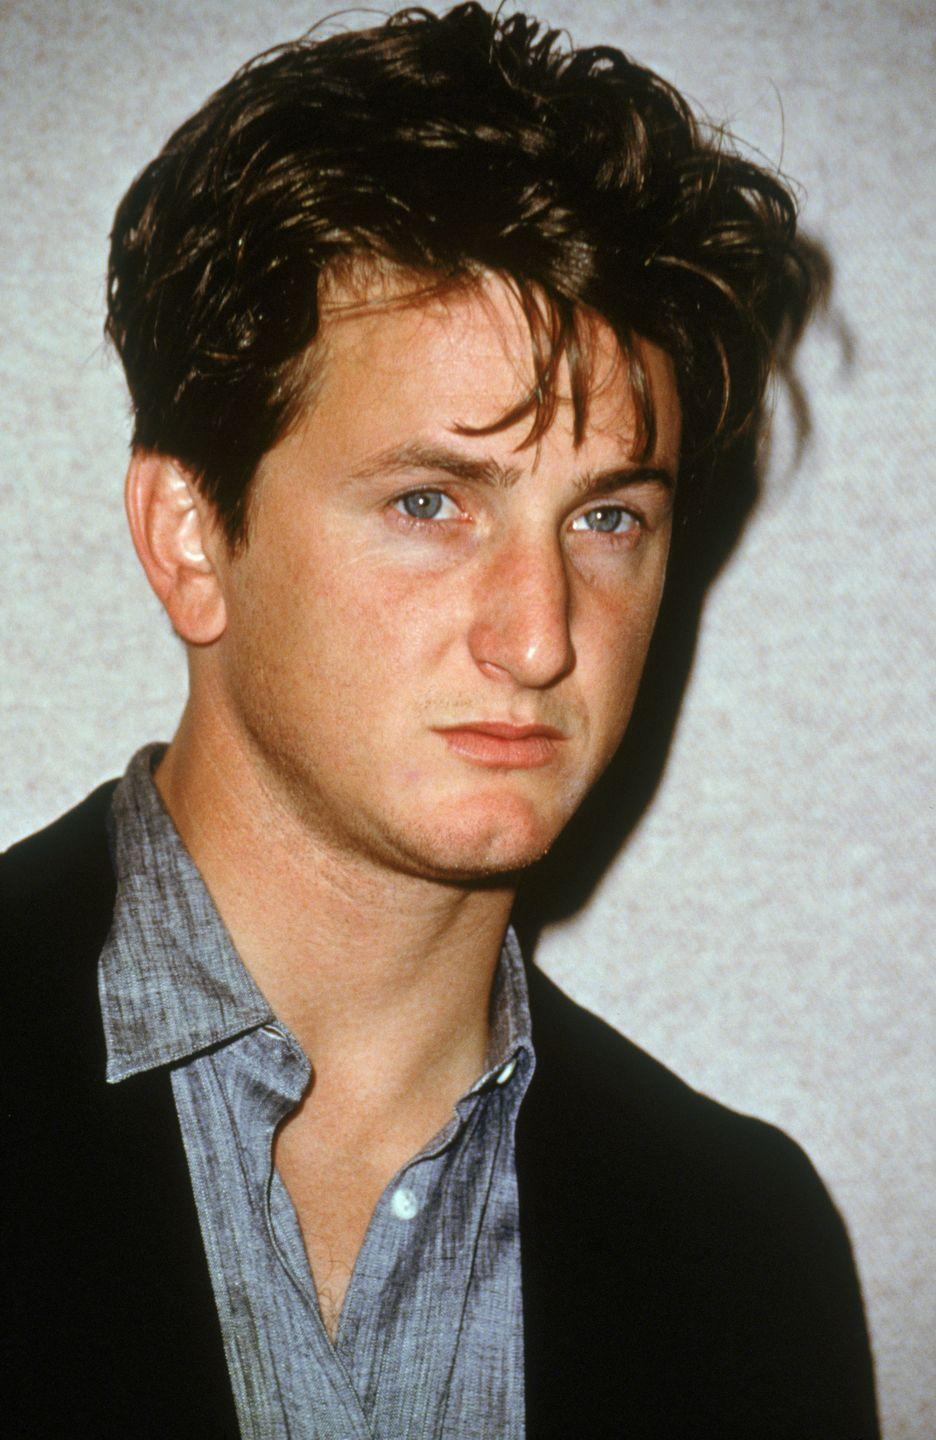 <p>Hollywood's bad boy, Sean Penn, wore his dark hair long in the front and short in the back during his heyday. </p>